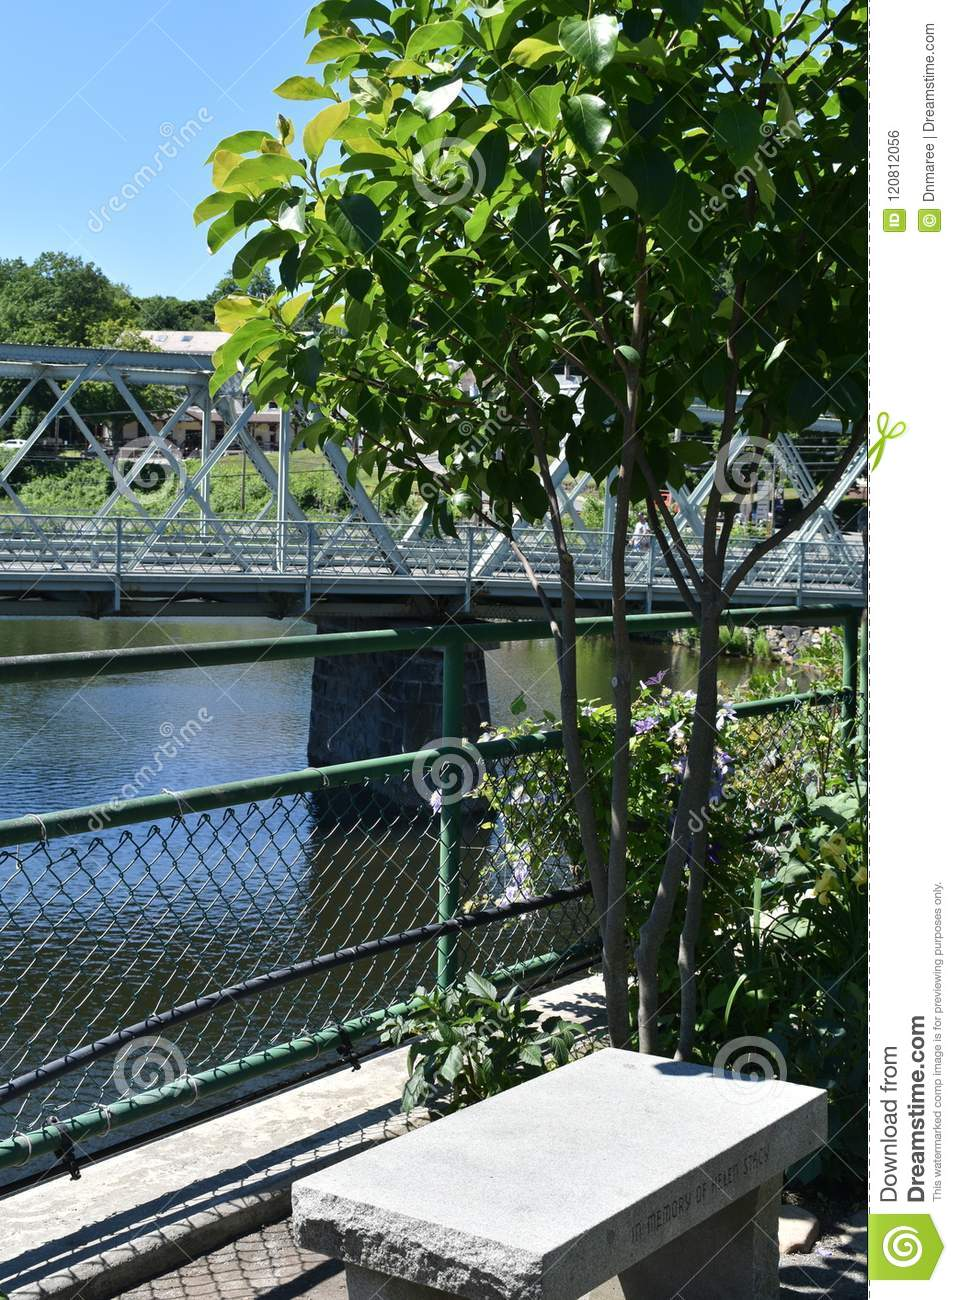 Le banc concret sur le pont de Fowers, Shelburne tombe, Franklin County, Massacusetts, Etats-Unis, Etats-Unis